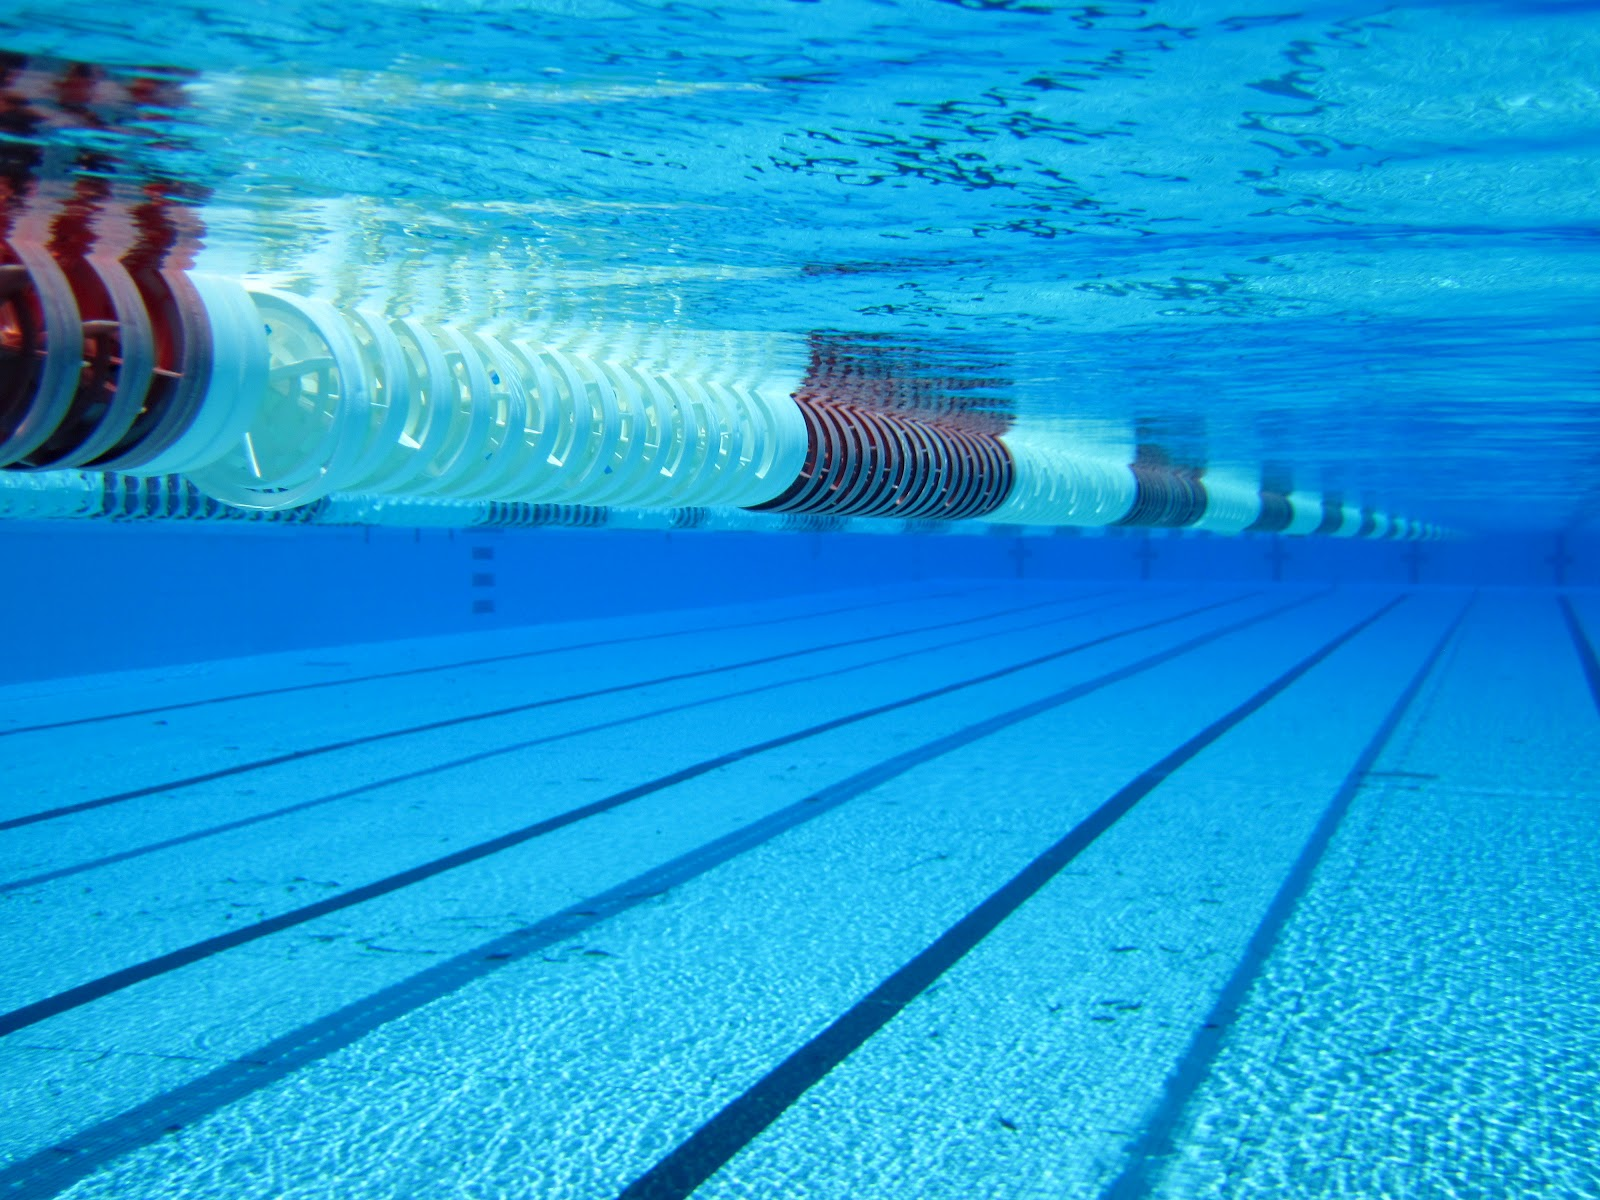 background image - Olympic Swimming Pool Underwater